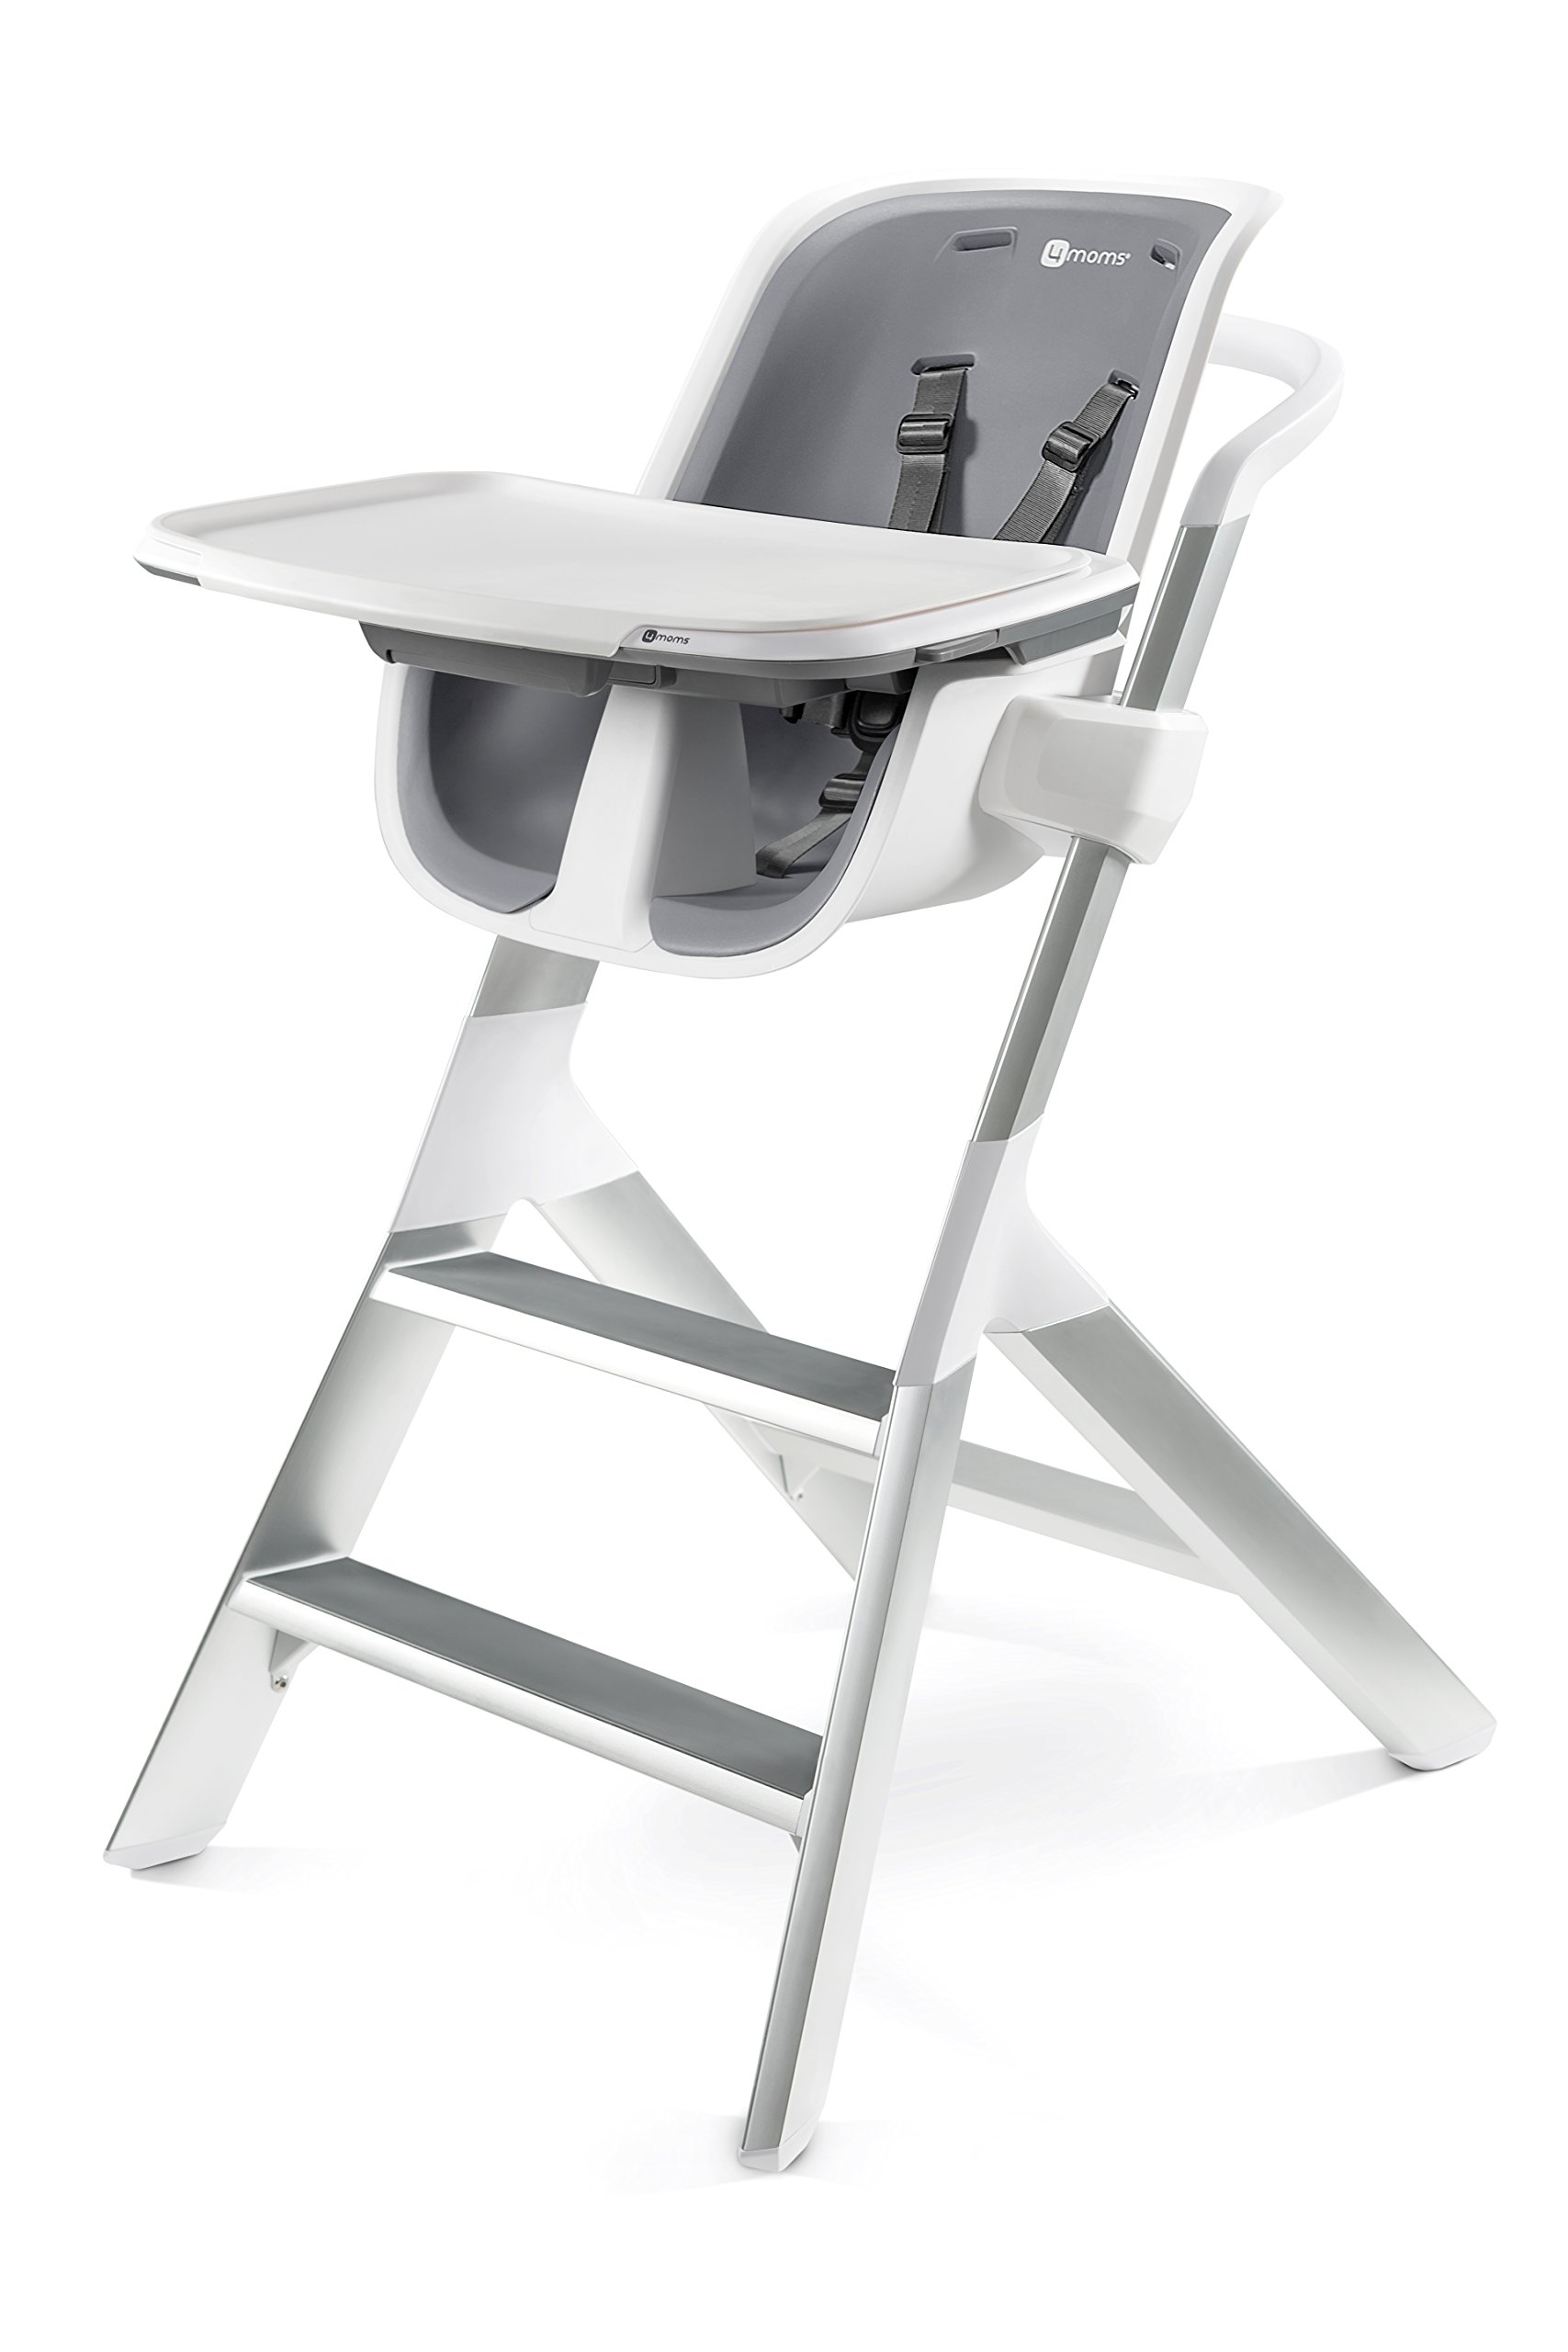 4moms high Chair - Easy to Clean with Magnetic, one-Handed Tray Attachment, from The Makers of The mamaRoo by 4moms